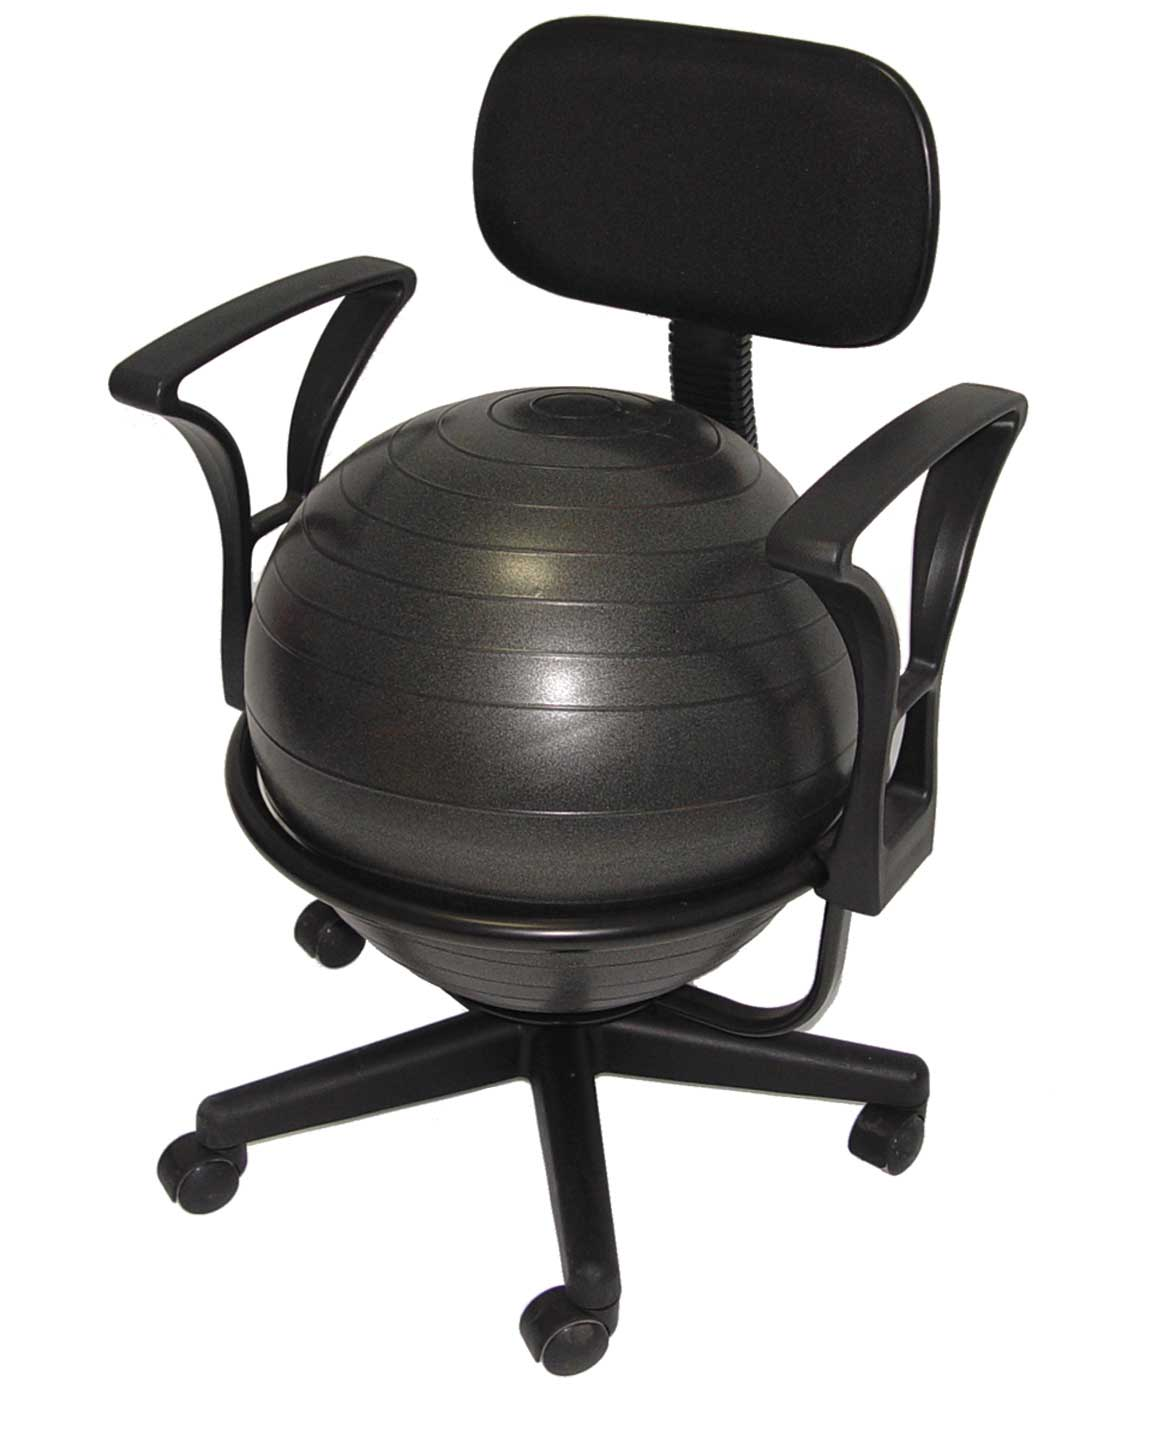 exercise ball office chair size leather reception chairs ergonomic for